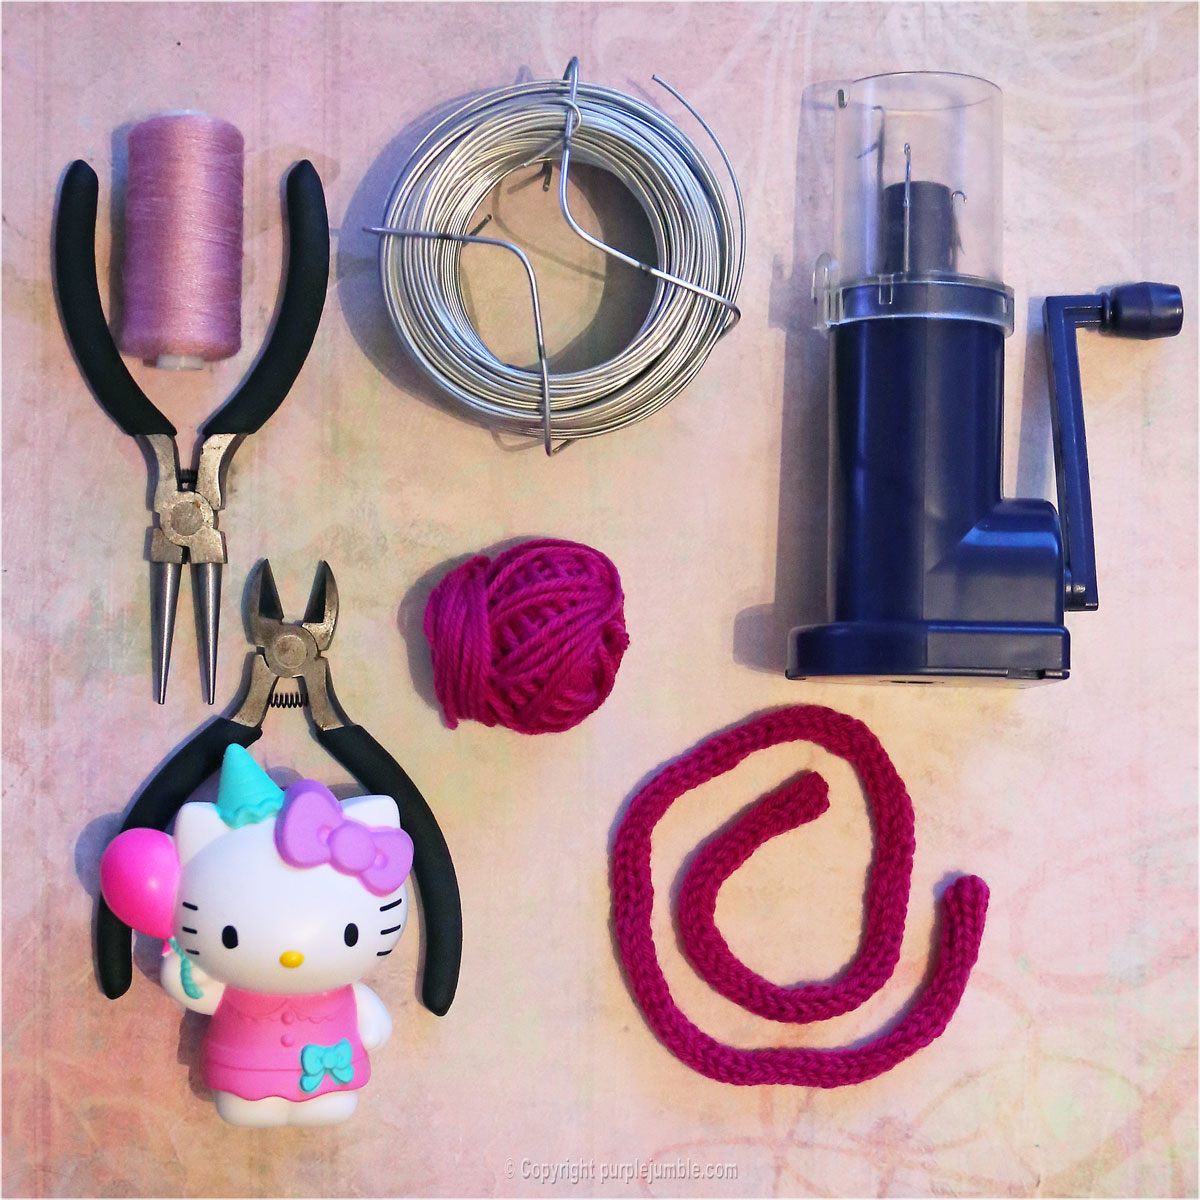 Diy un serre t te oreilles de chat purple jumble - Tete hello kitty ...